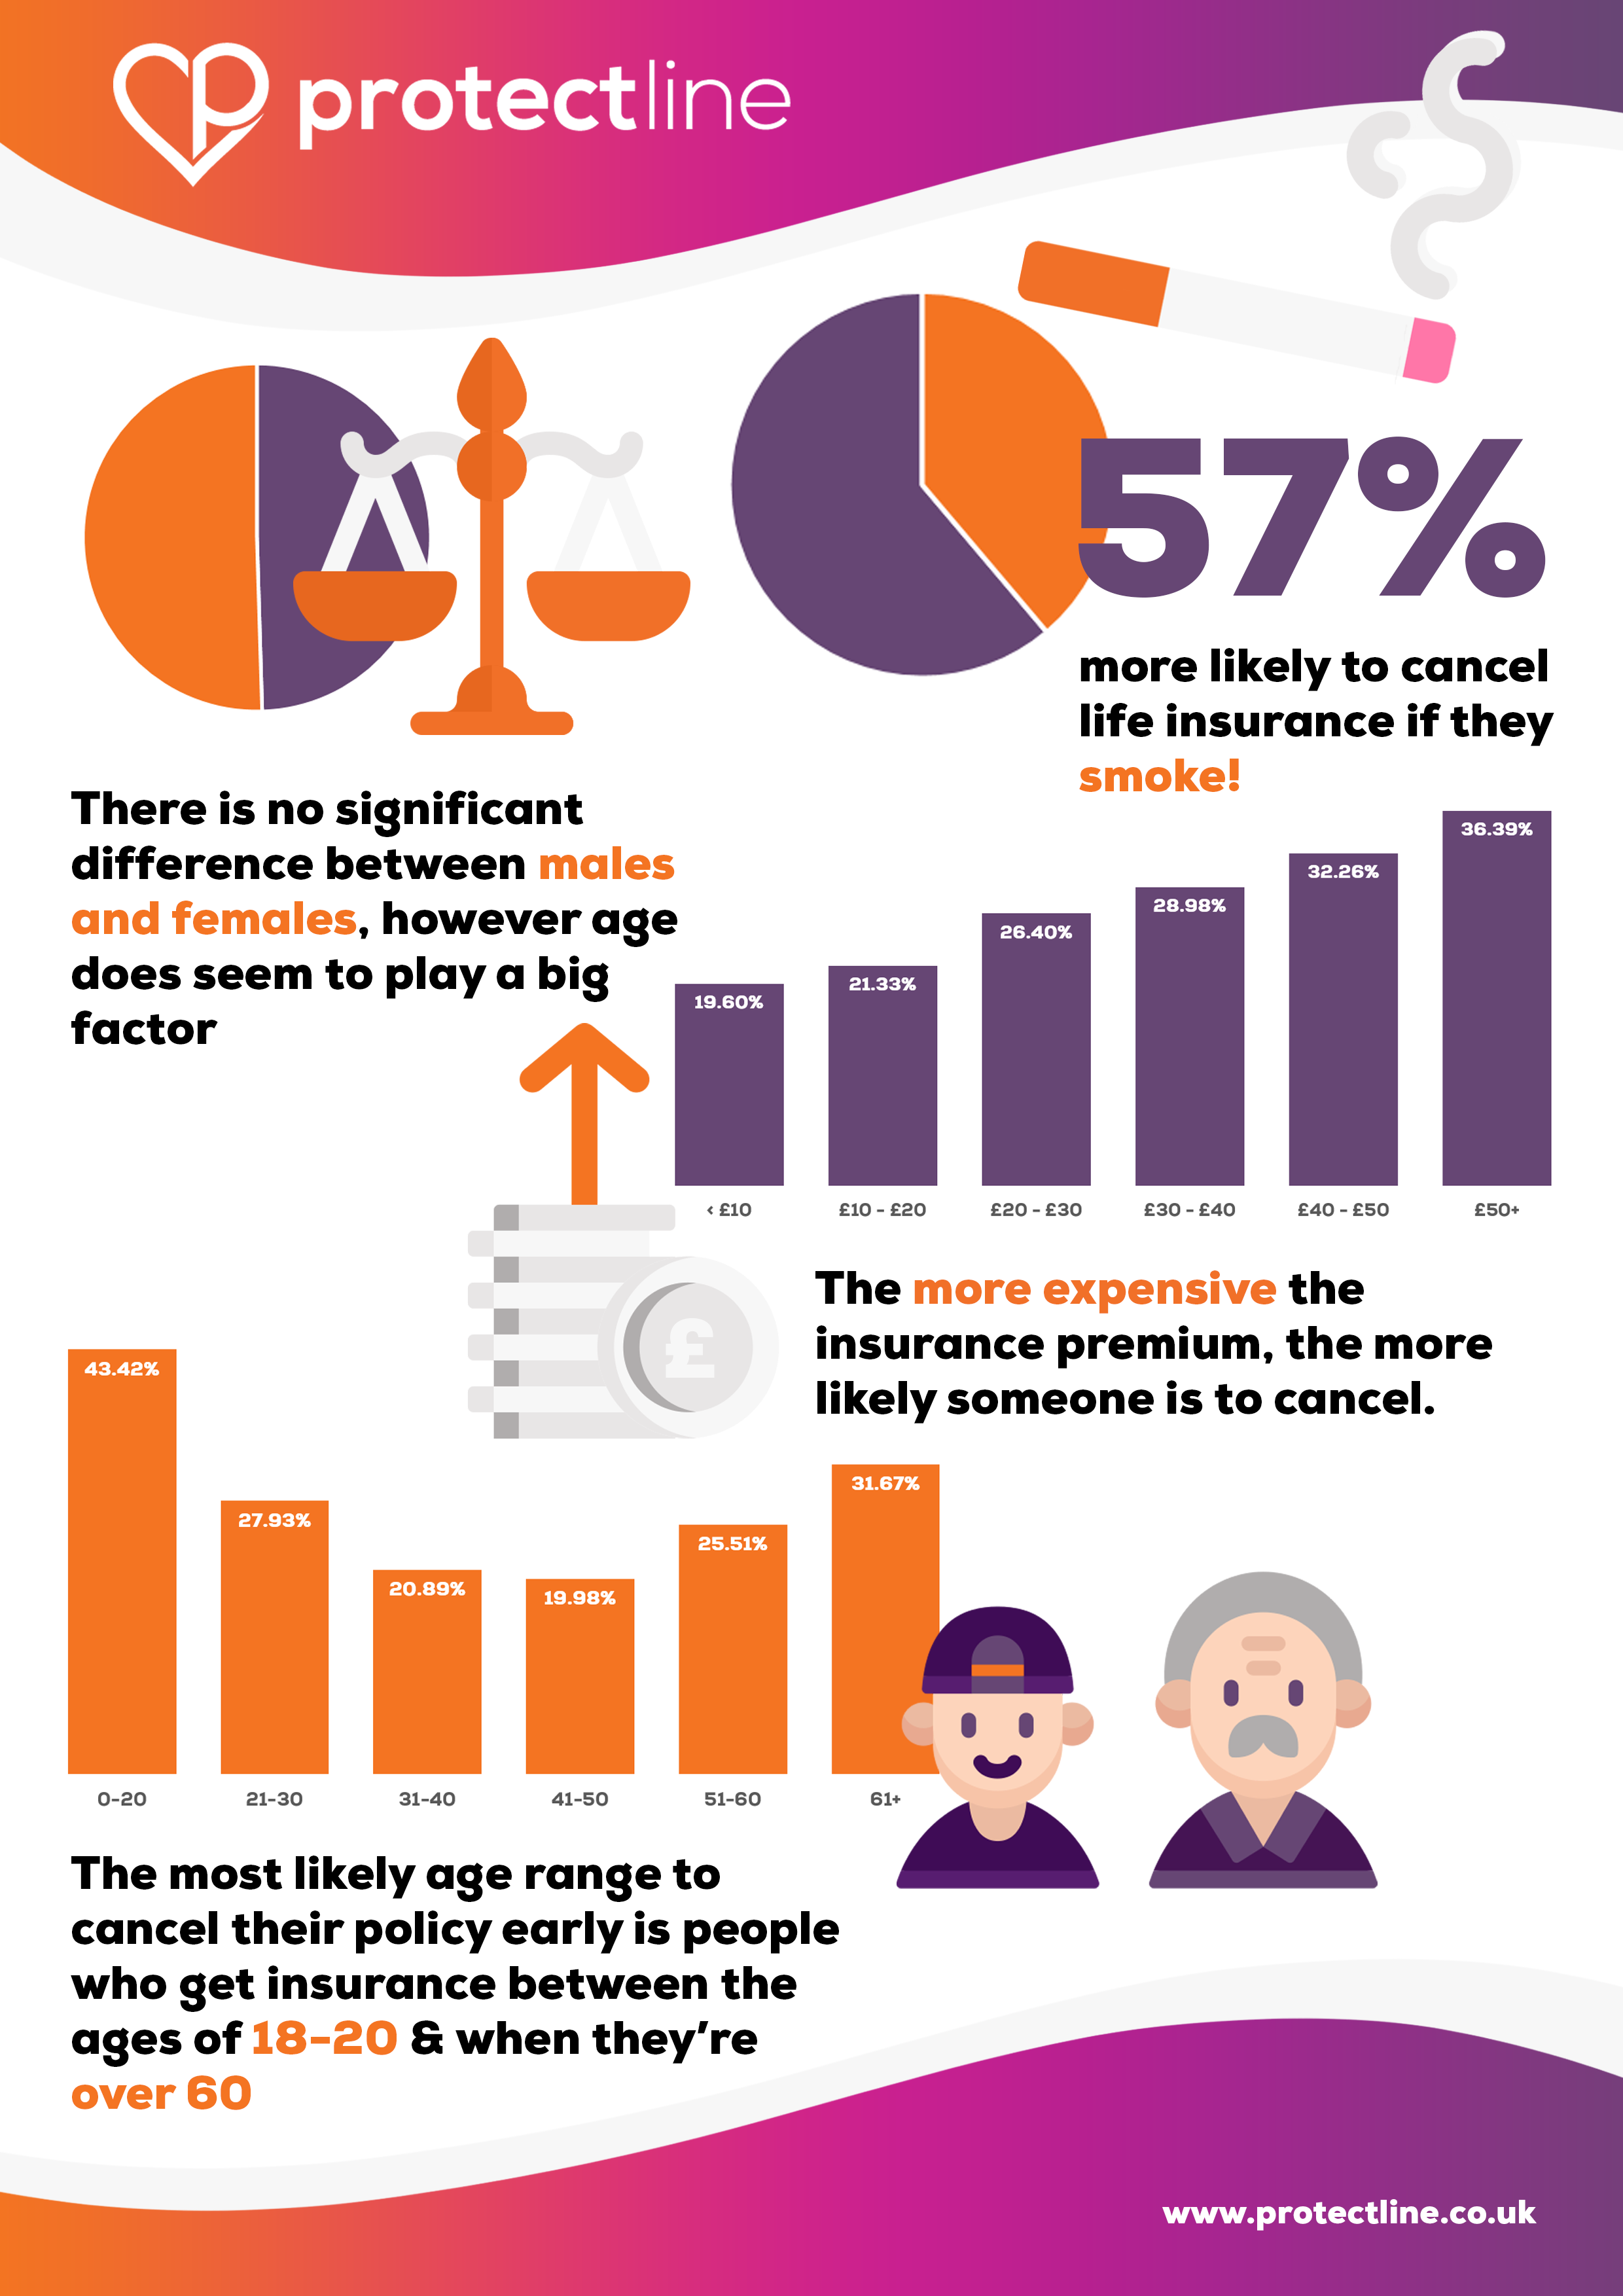 infographic - smokers most likely to cancel life insurance